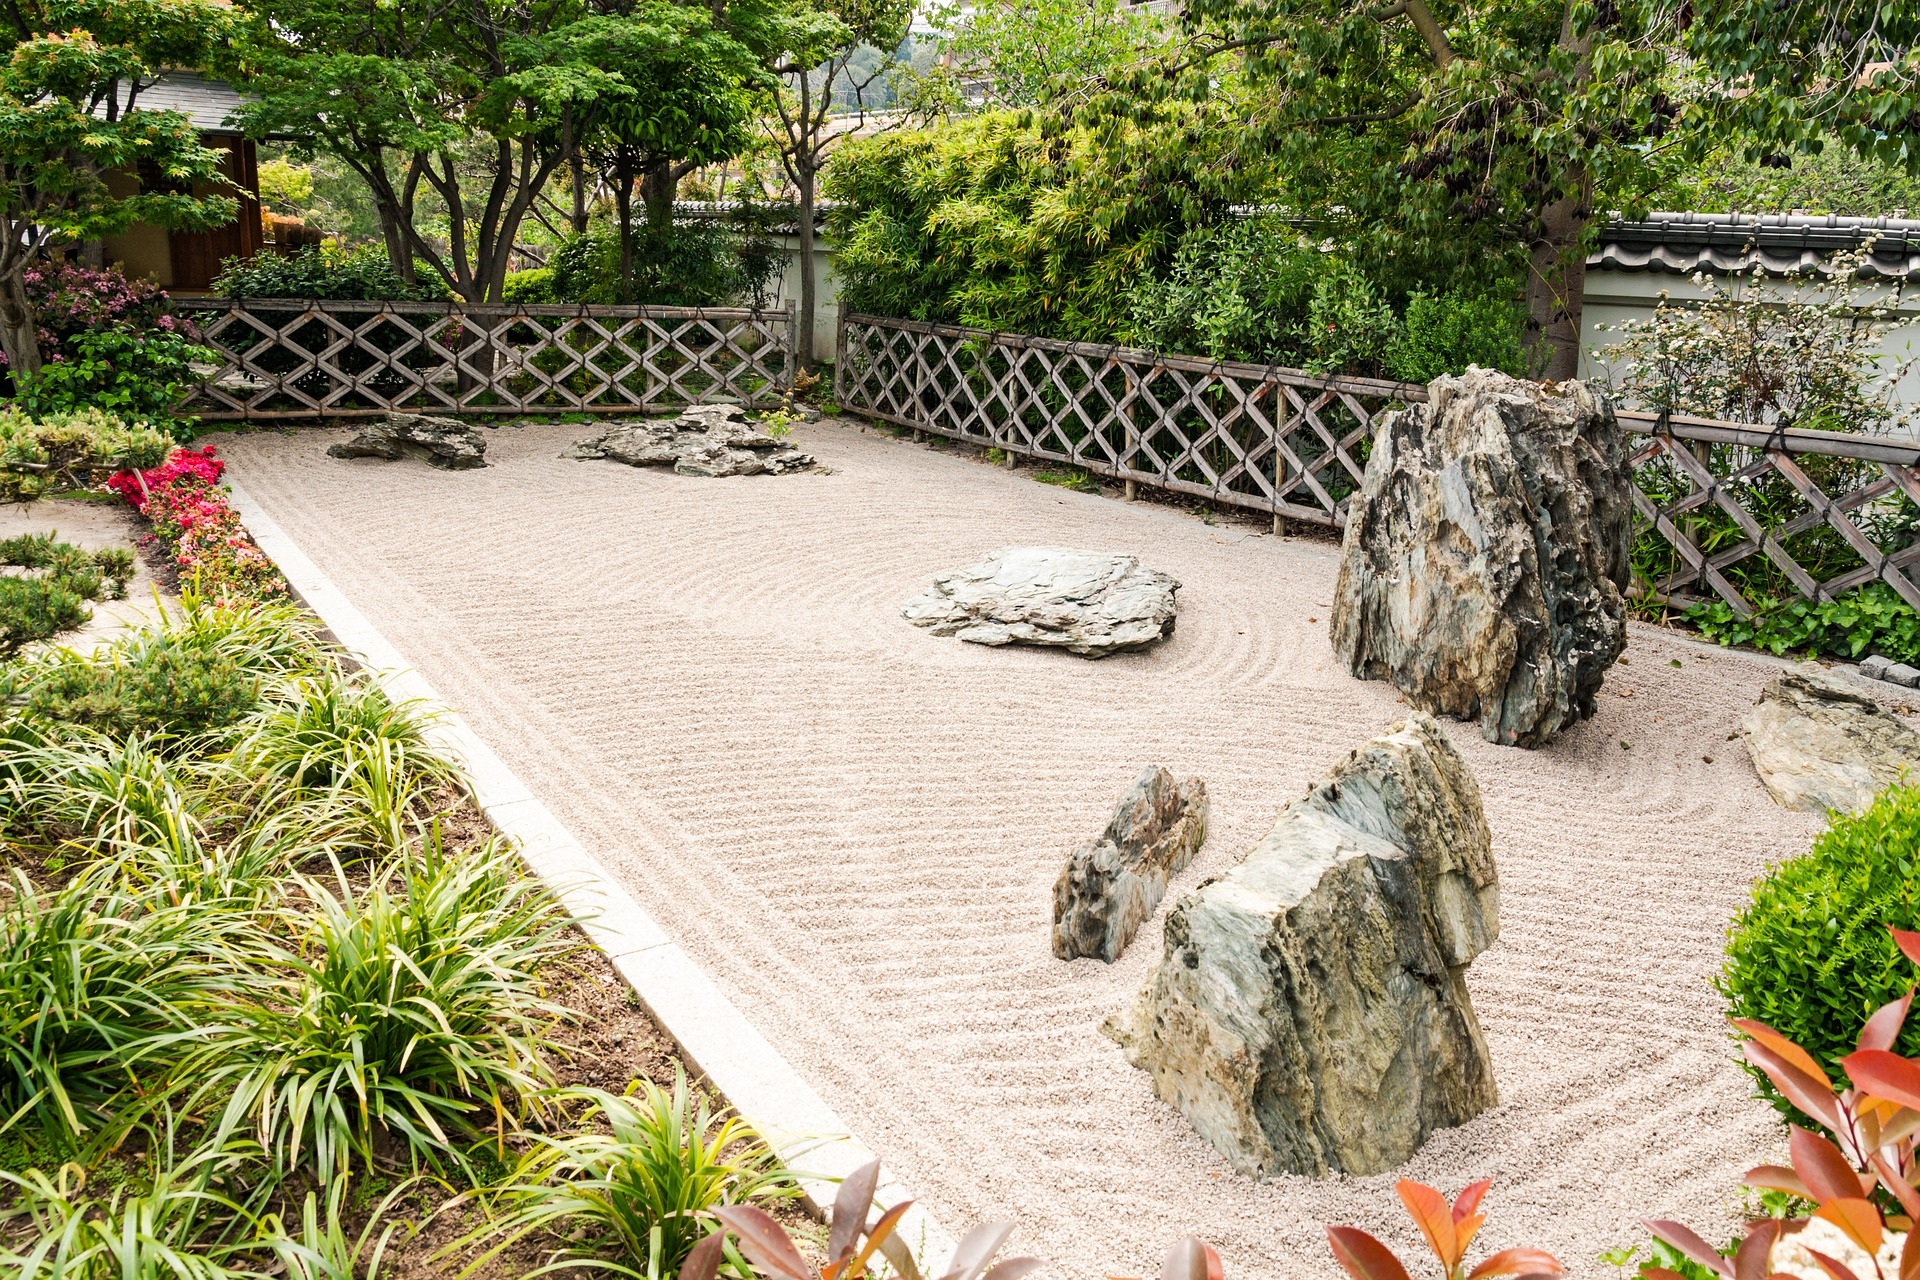 A landscape of zen garden in a backyard.